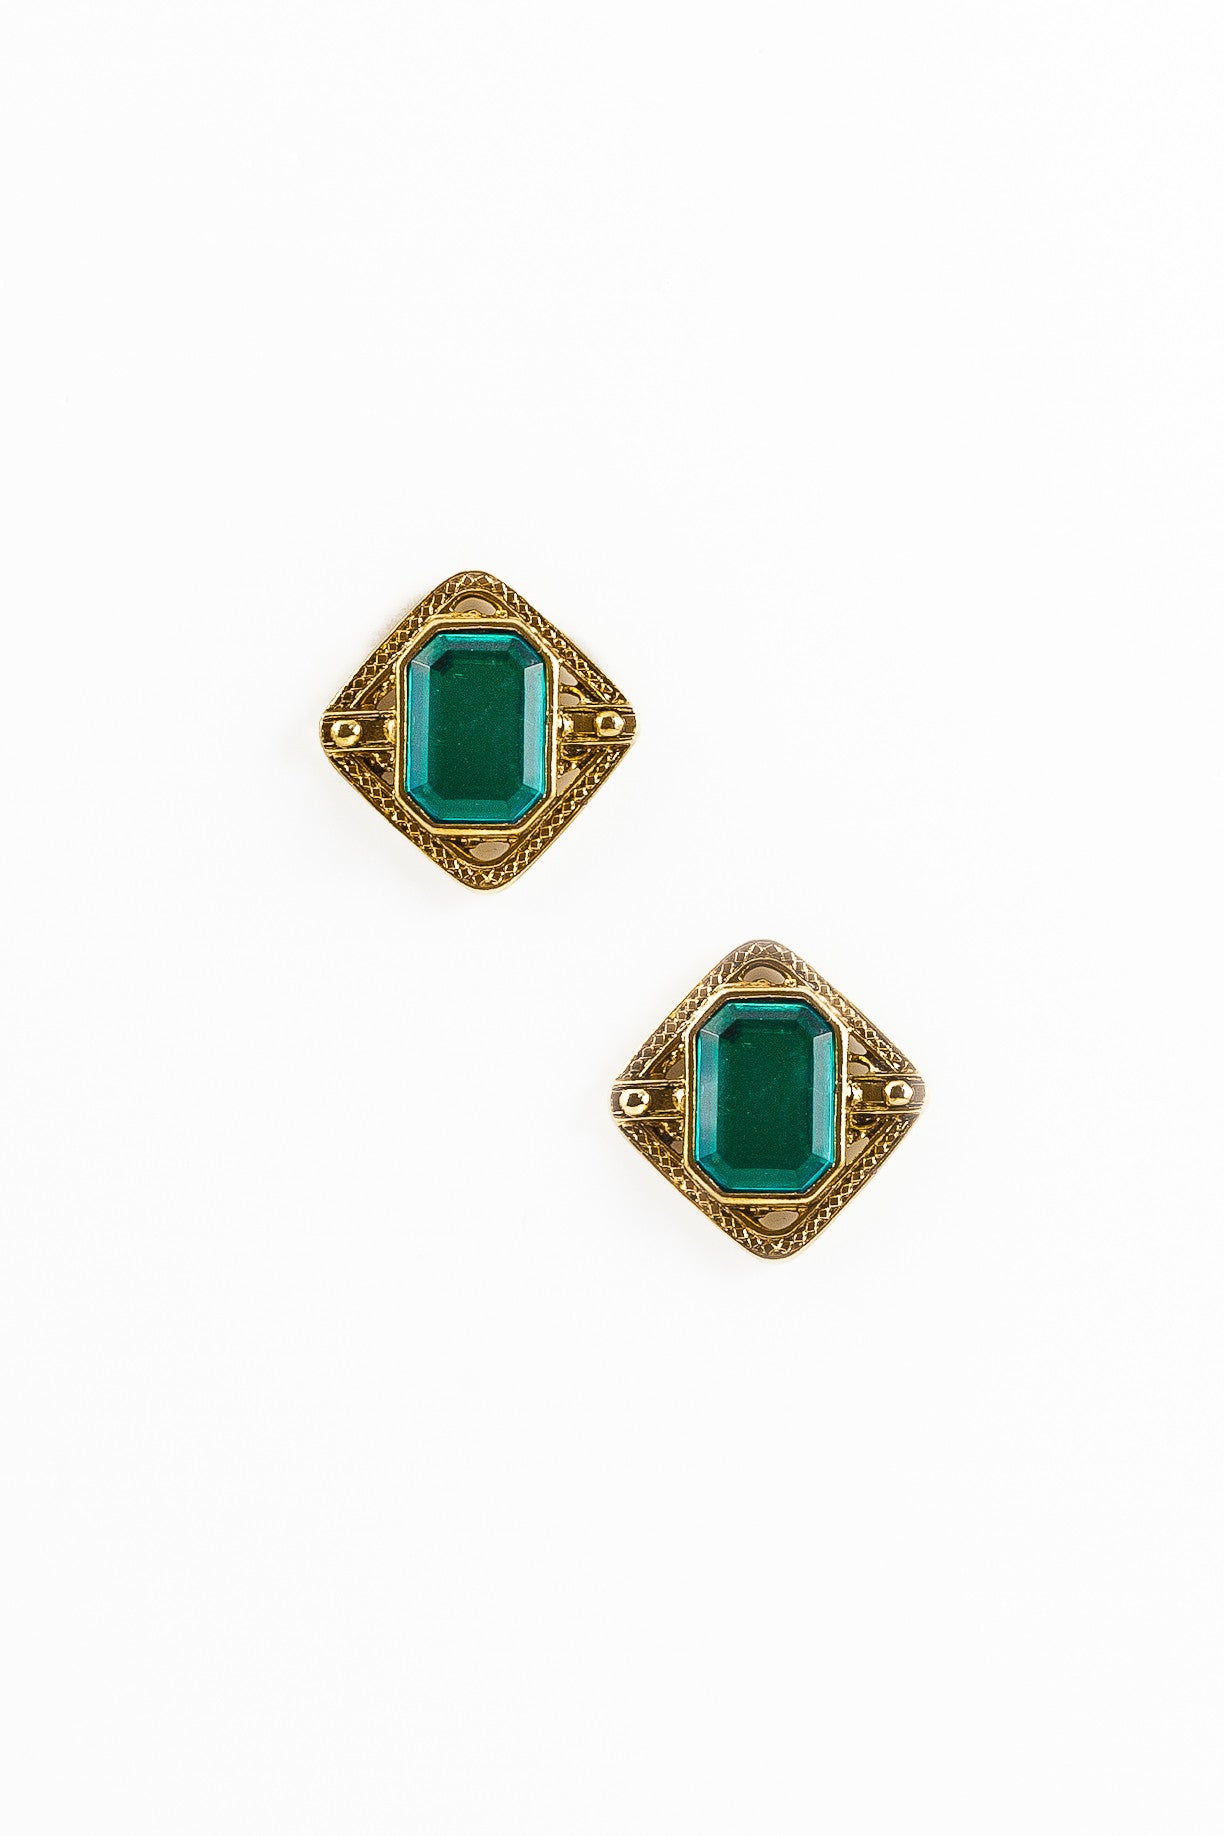 70's__Vintage__Emerald Statement Shield Earrings